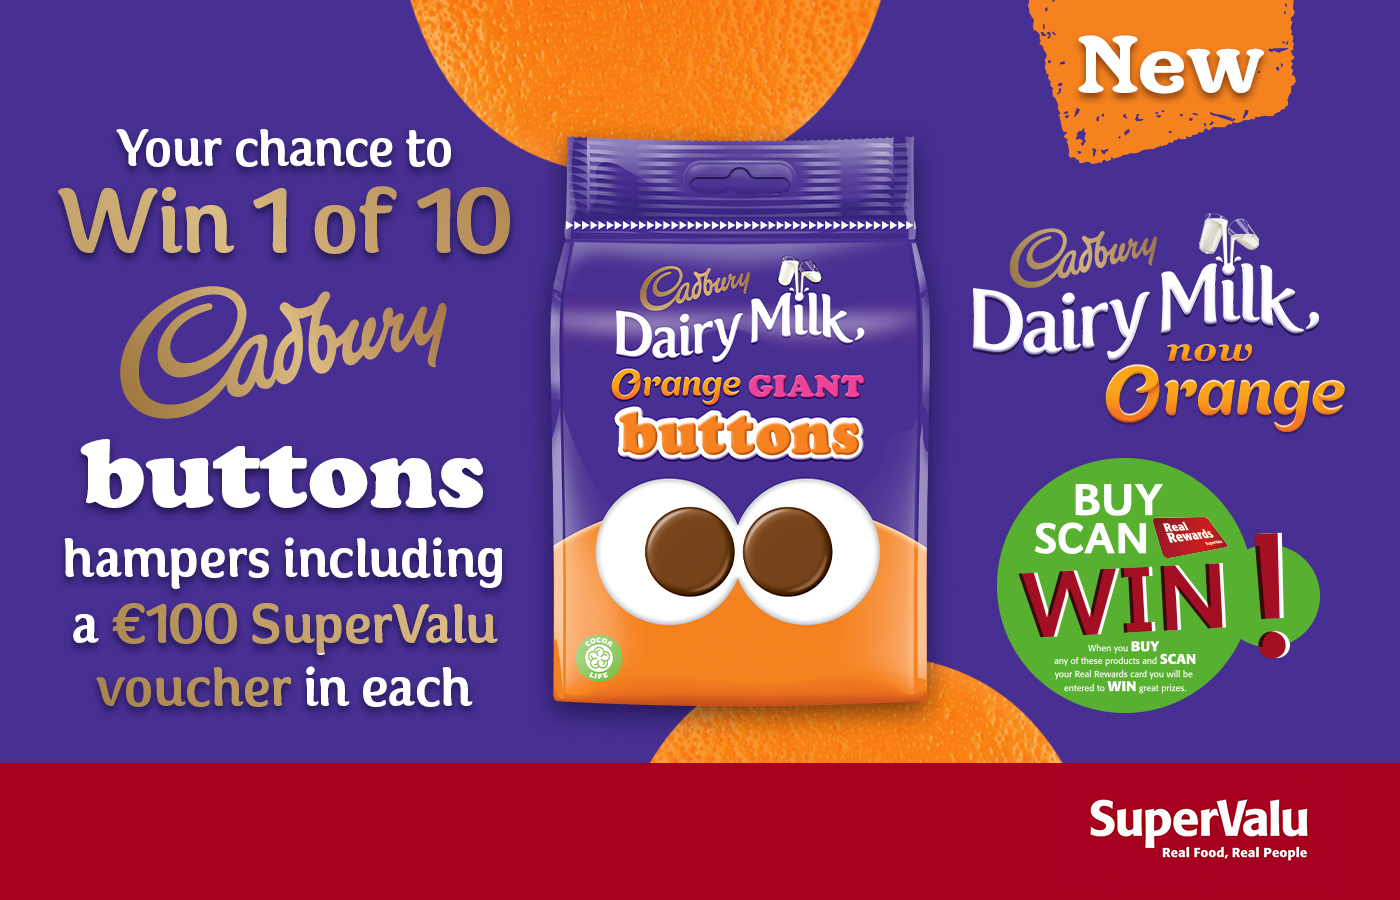 Win 1 of 10 Delicious Cadbury Buttons Hampers.